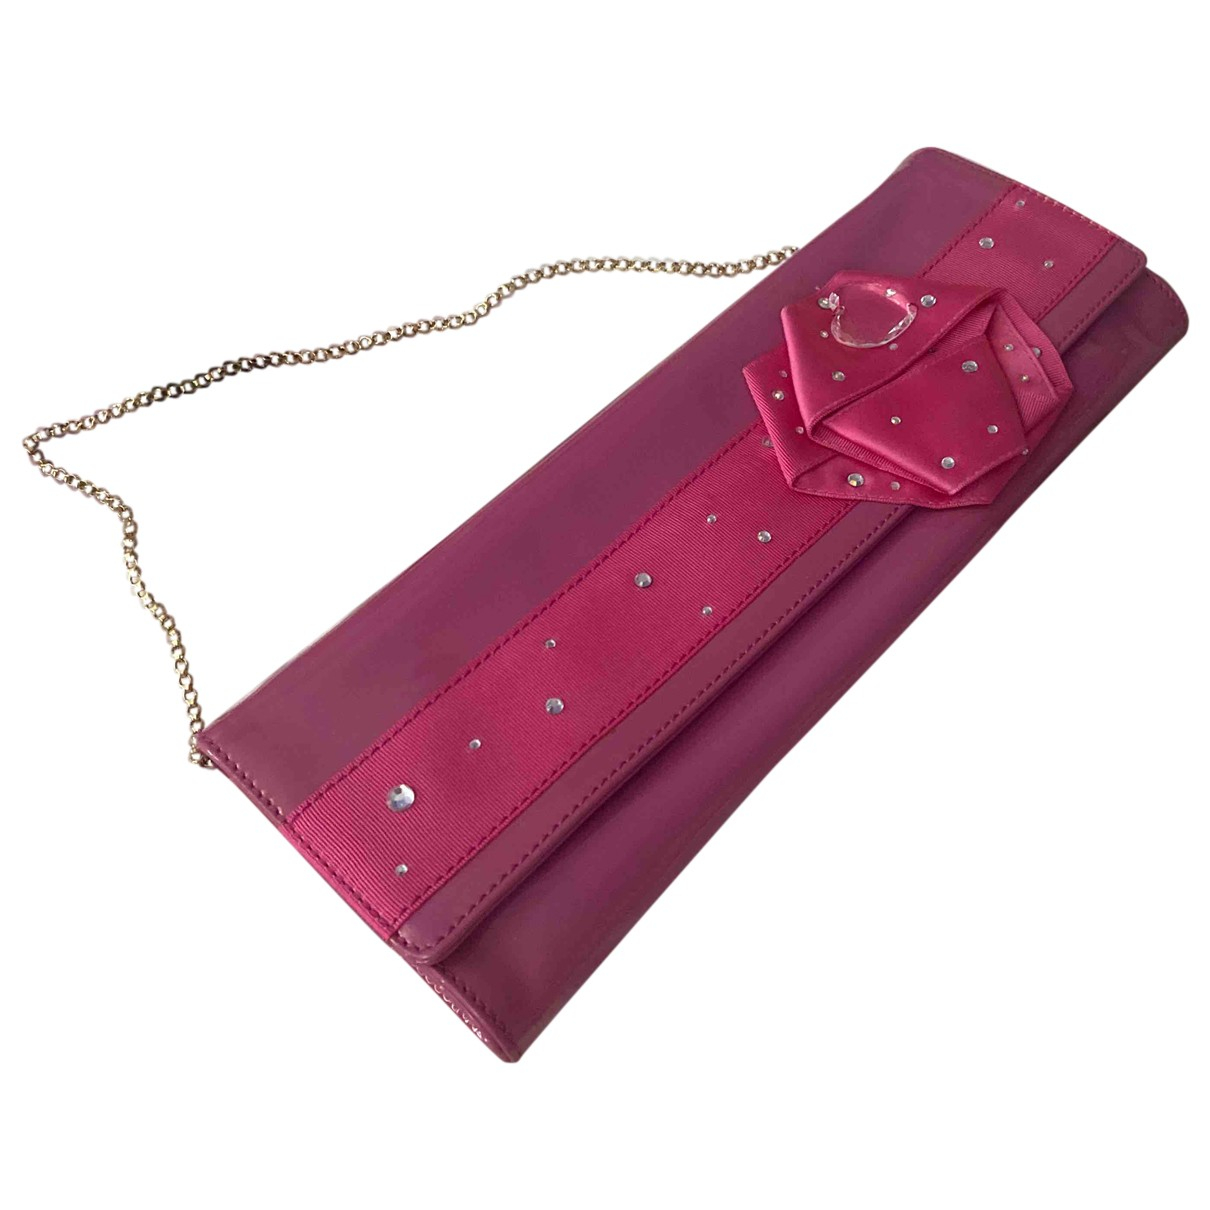 Versus \N Pink Patent leather Clutch bag for Women \N